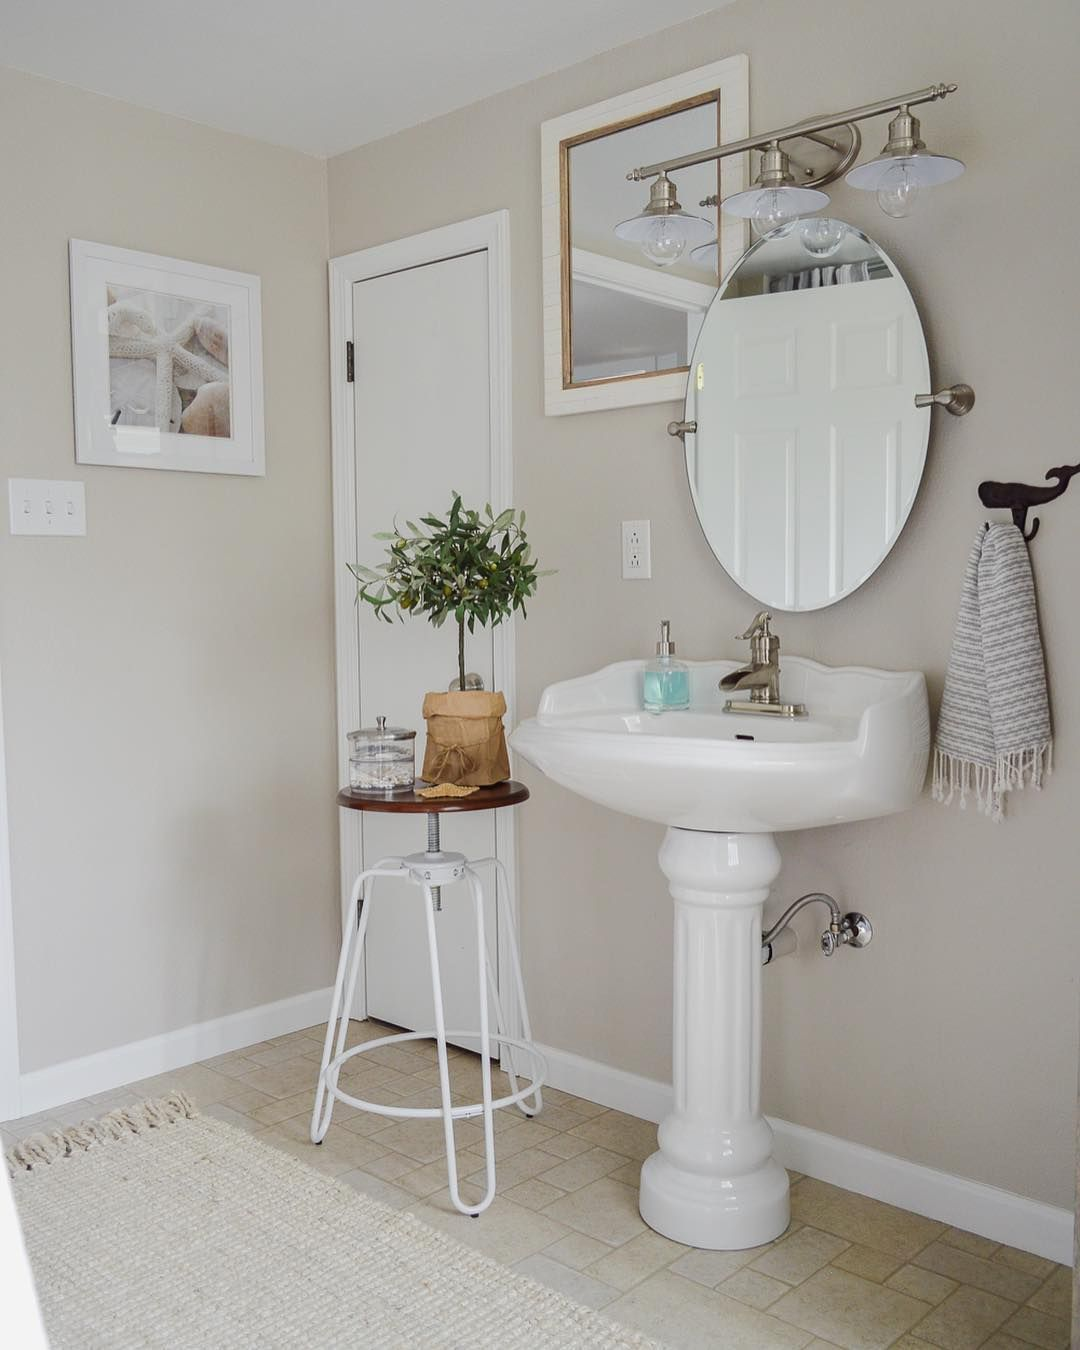 20 Clever Pedestal Sink Storage Design Ideas Sink Storage